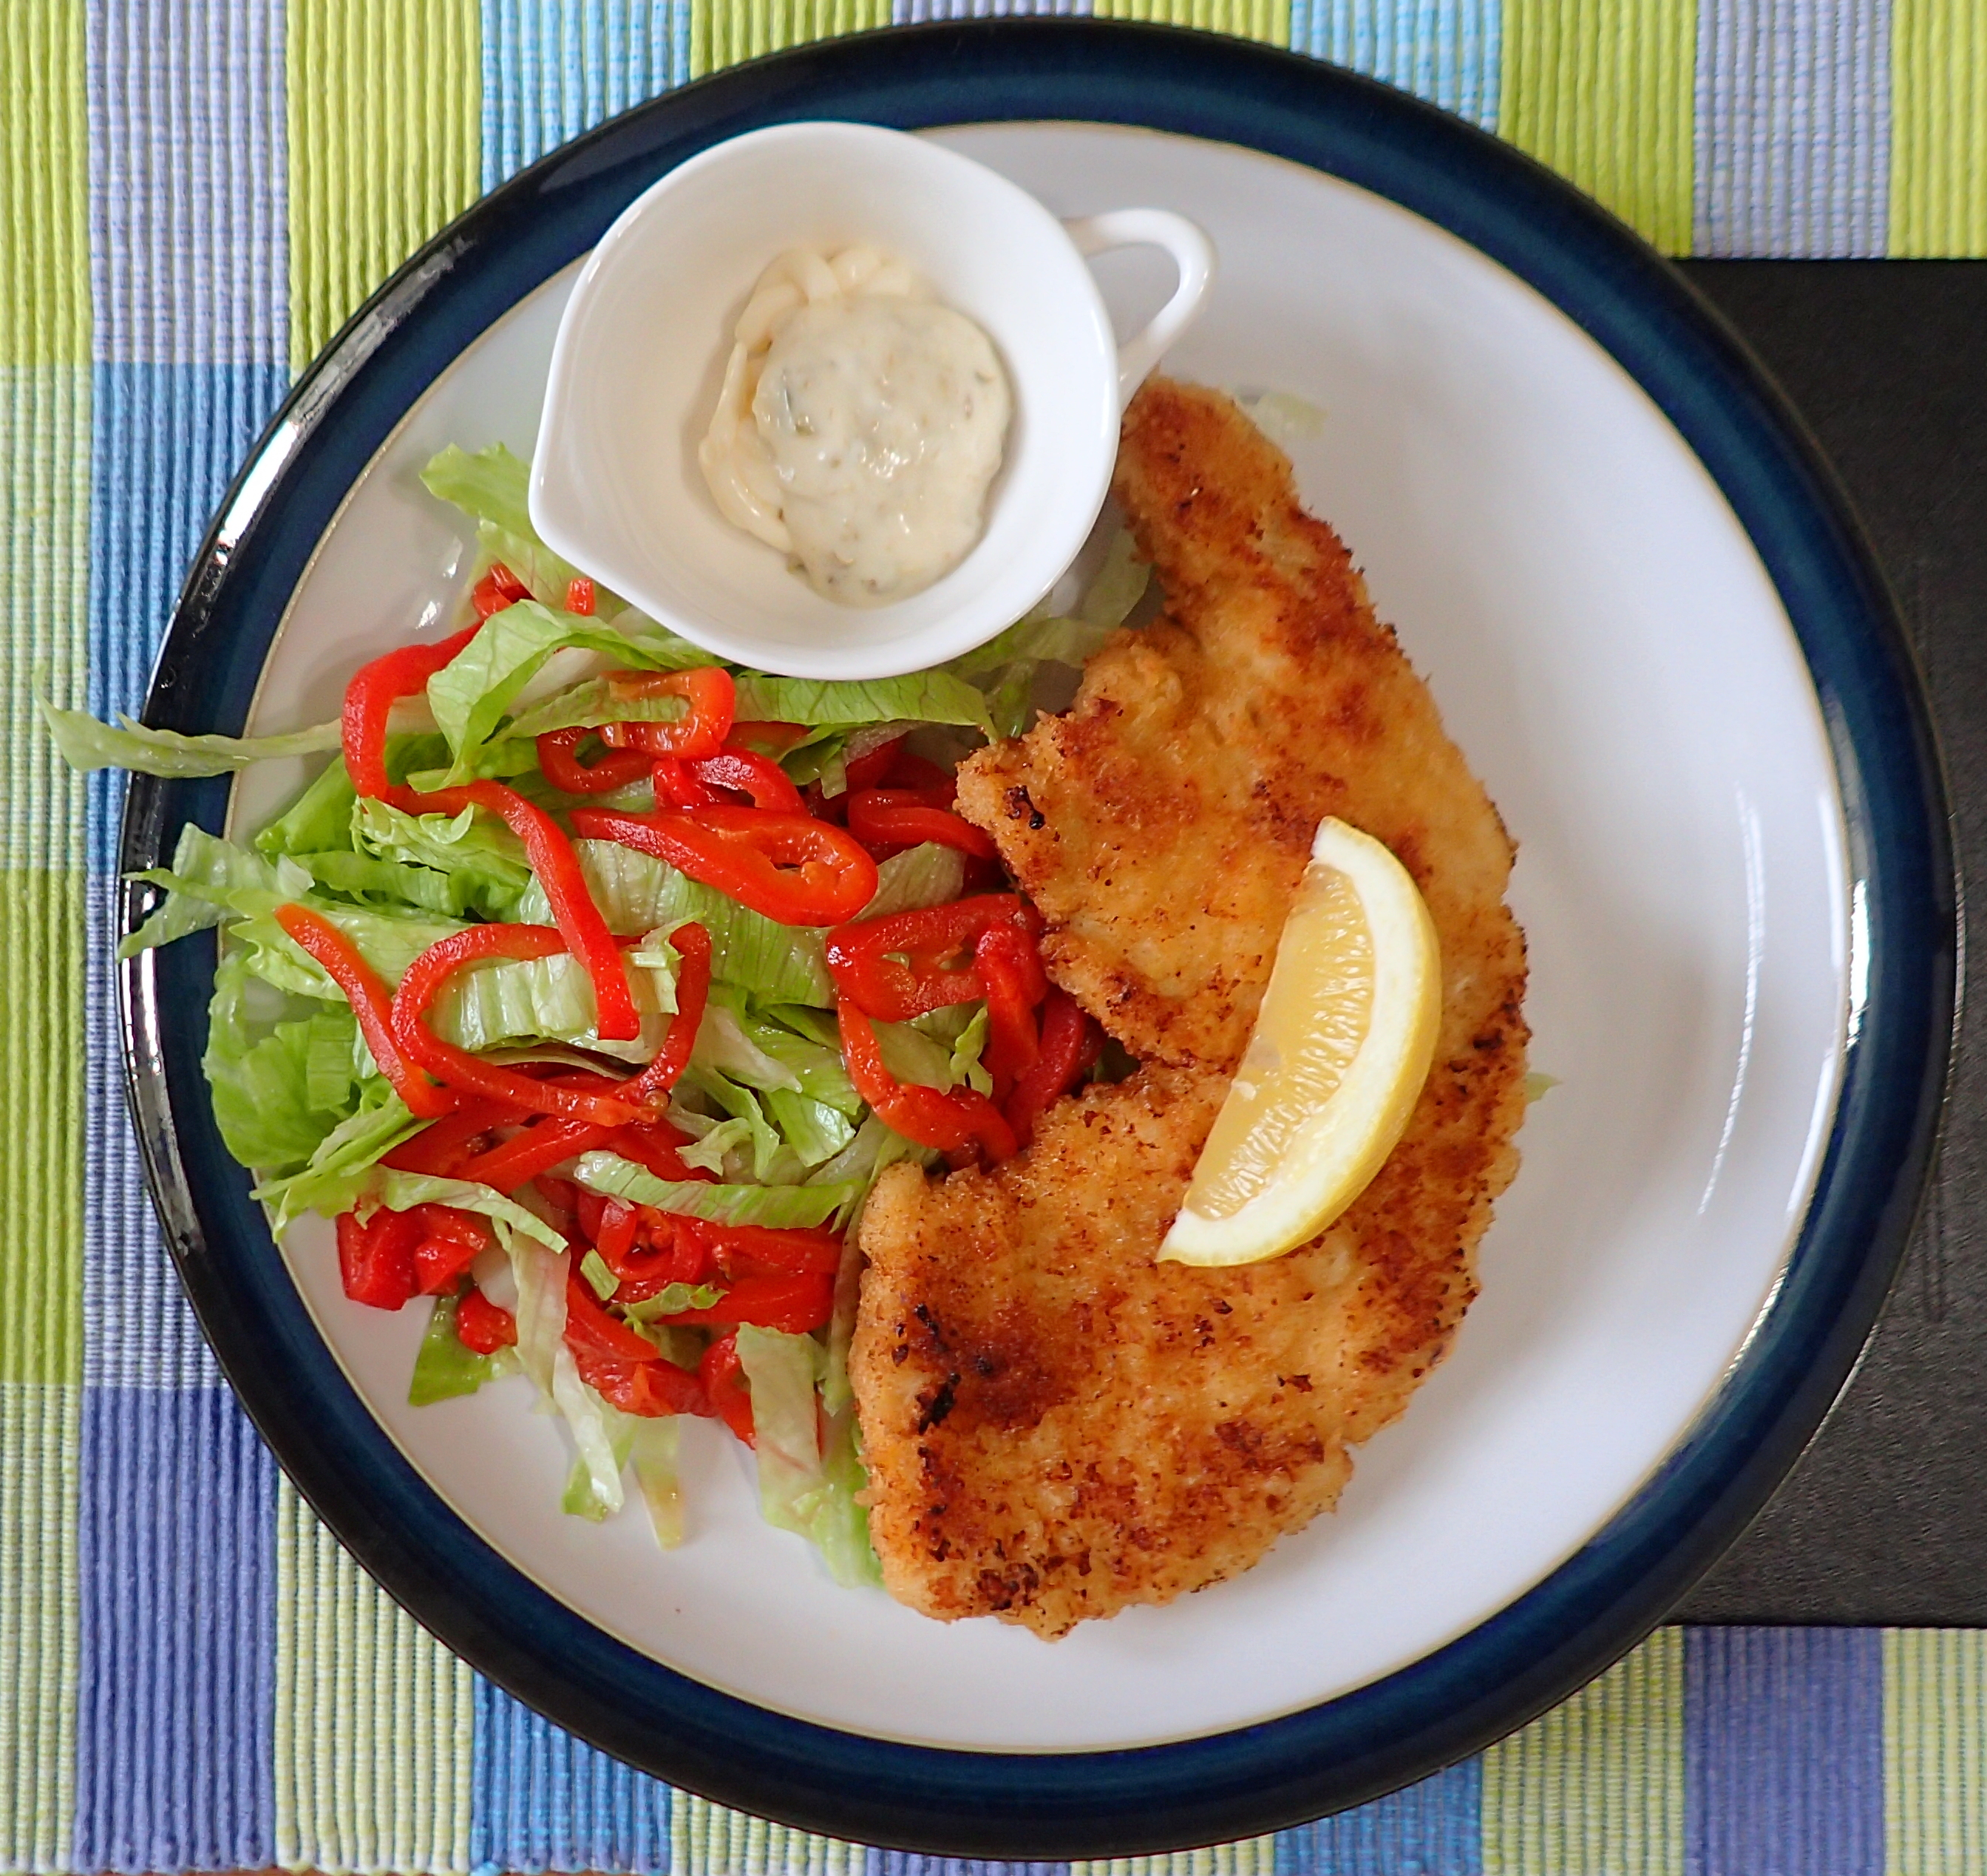 Turkey schnitzel with lettuce & pickled red peppers